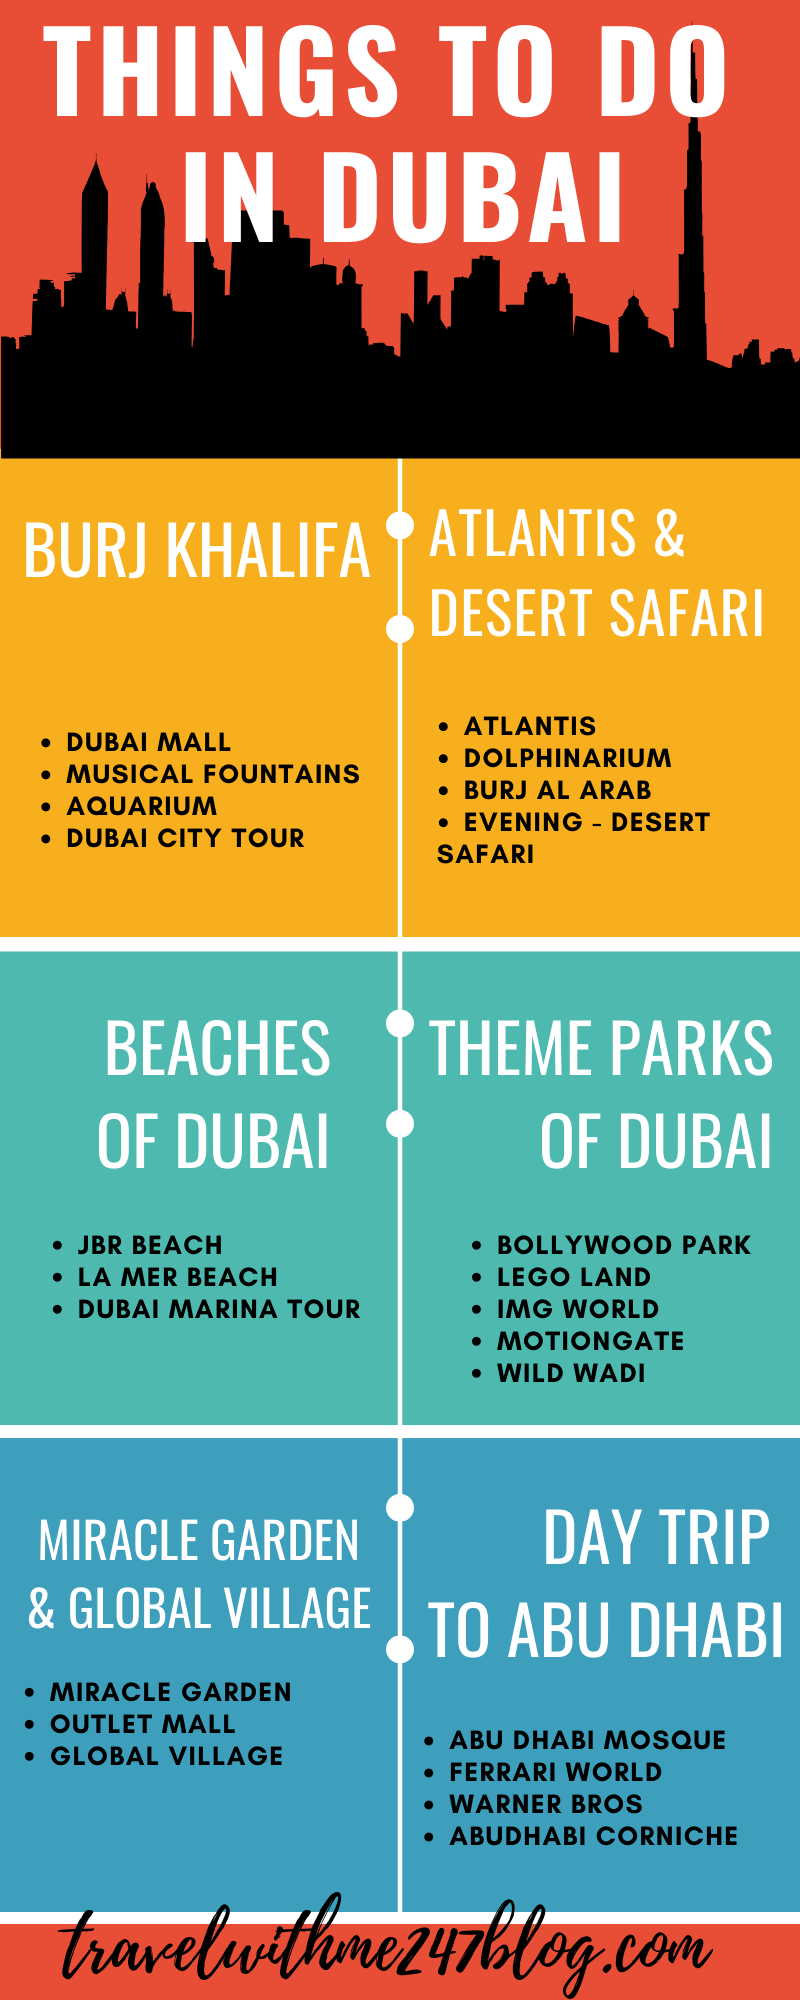 Things to do in Dubai Checklist